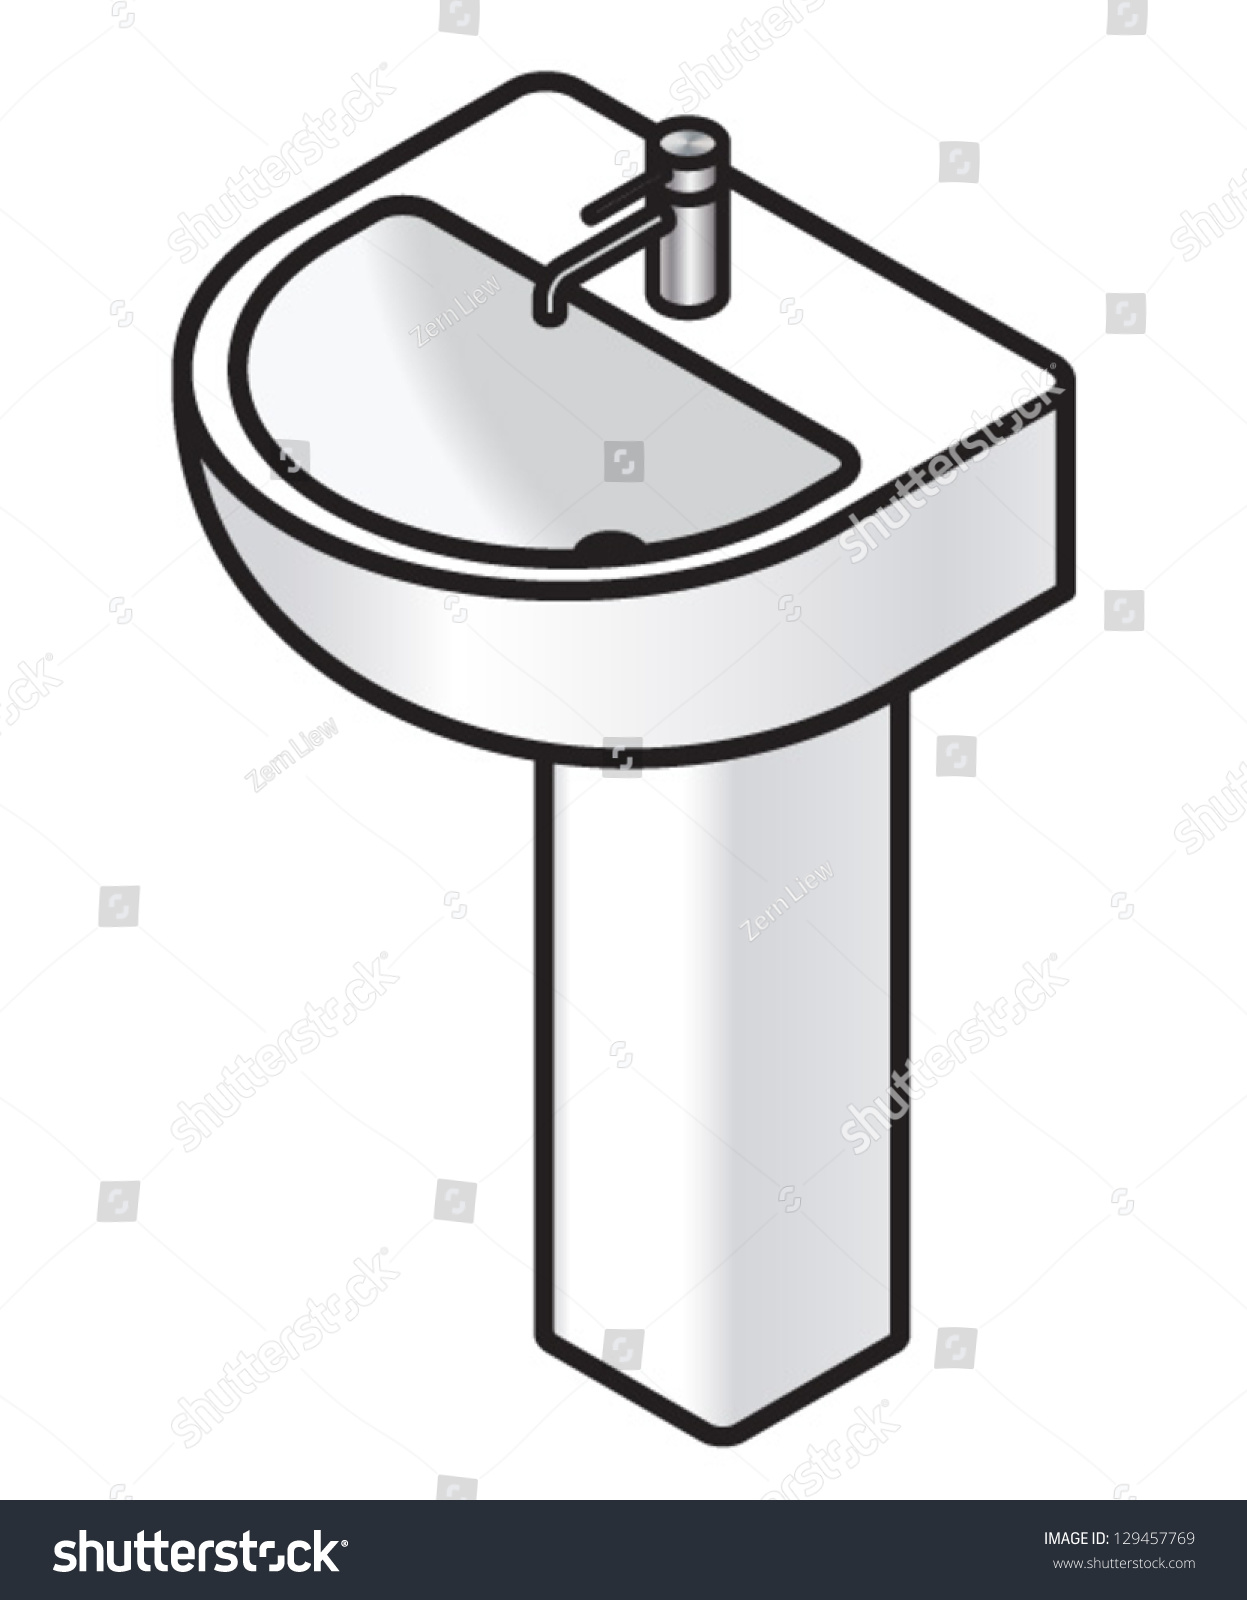 Clean bathroom sink clip art - Bathroom Sink Clip Art